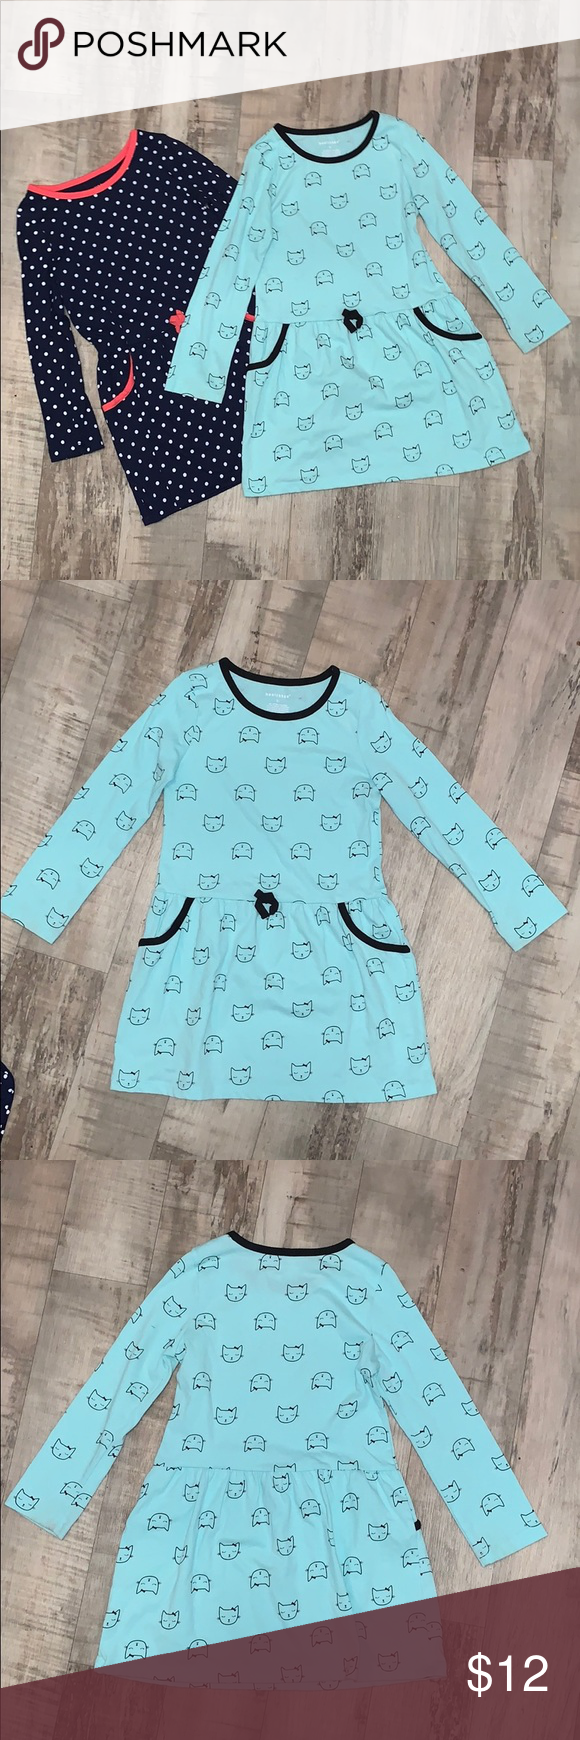 2 Healthtex Long Sleeve Dresses Size 5t Dresses With Sleeves Long Sleeve Dress Clothes Design [ 1740 x 580 Pixel ]